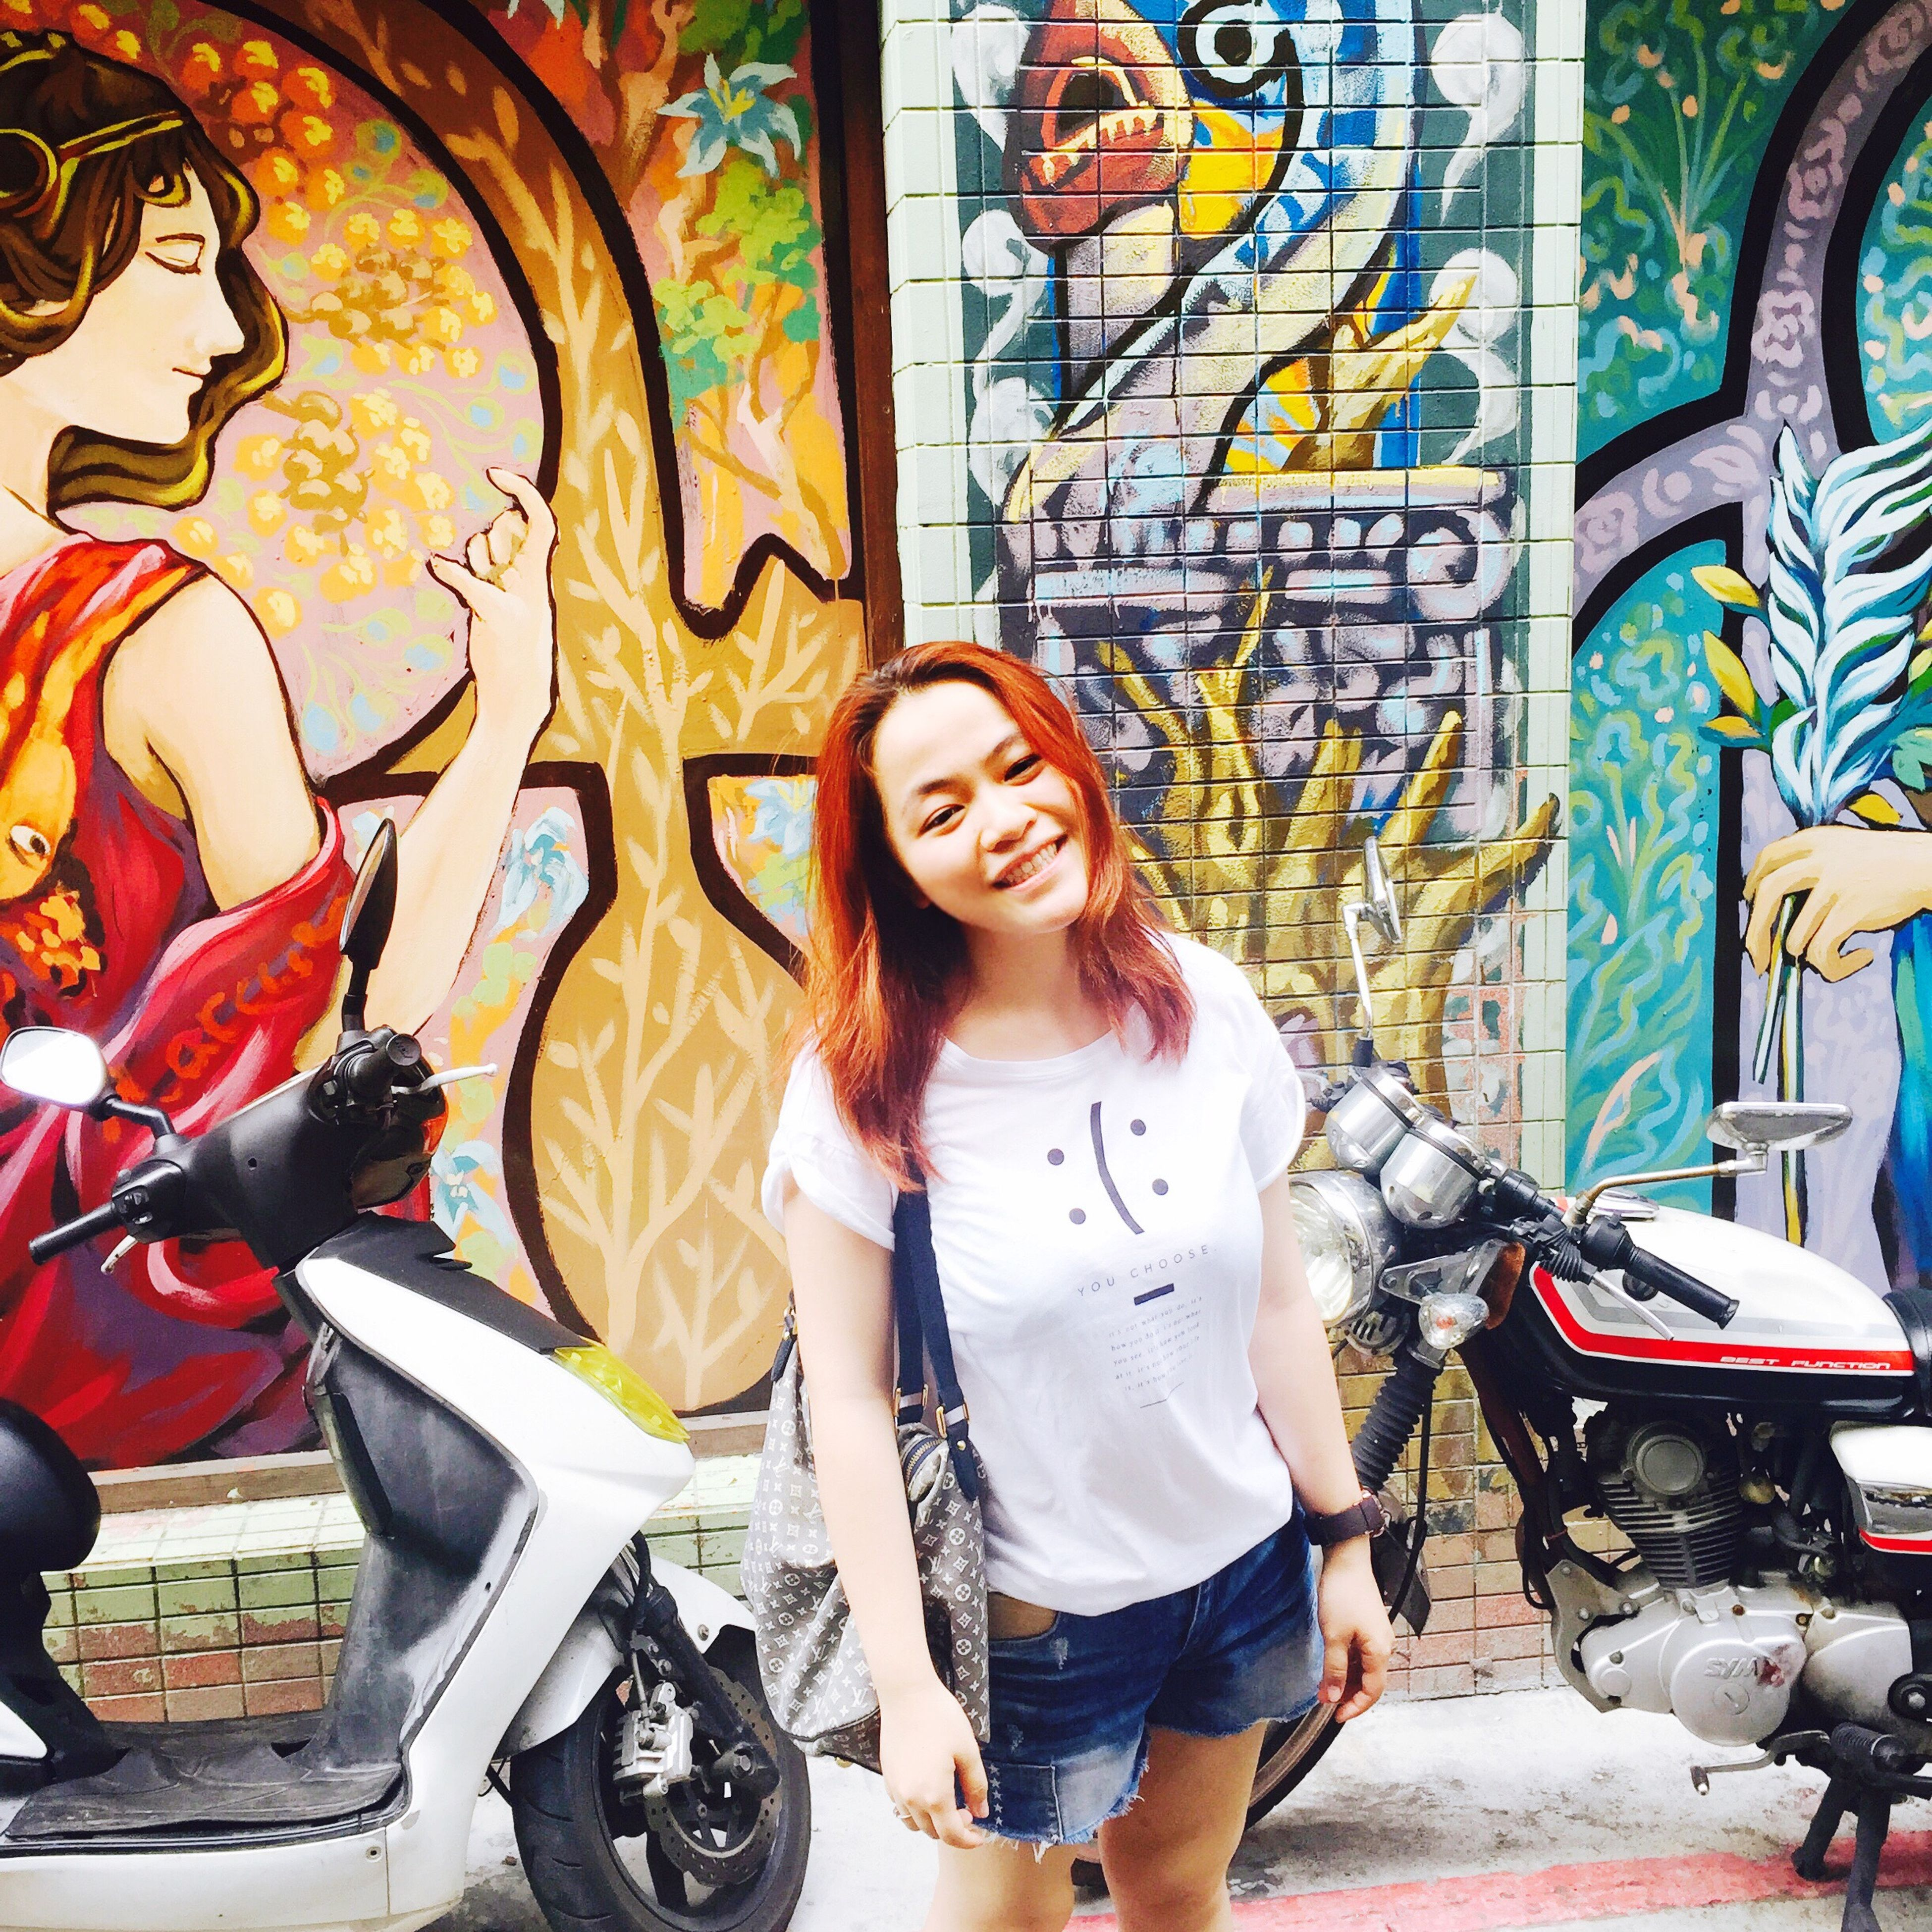 lifestyles, young adult, casual clothing, young women, leisure activity, person, looking at camera, front view, portrait, standing, graffiti, street, smiling, long hair, architecture, wall - building feature, happiness, built structure